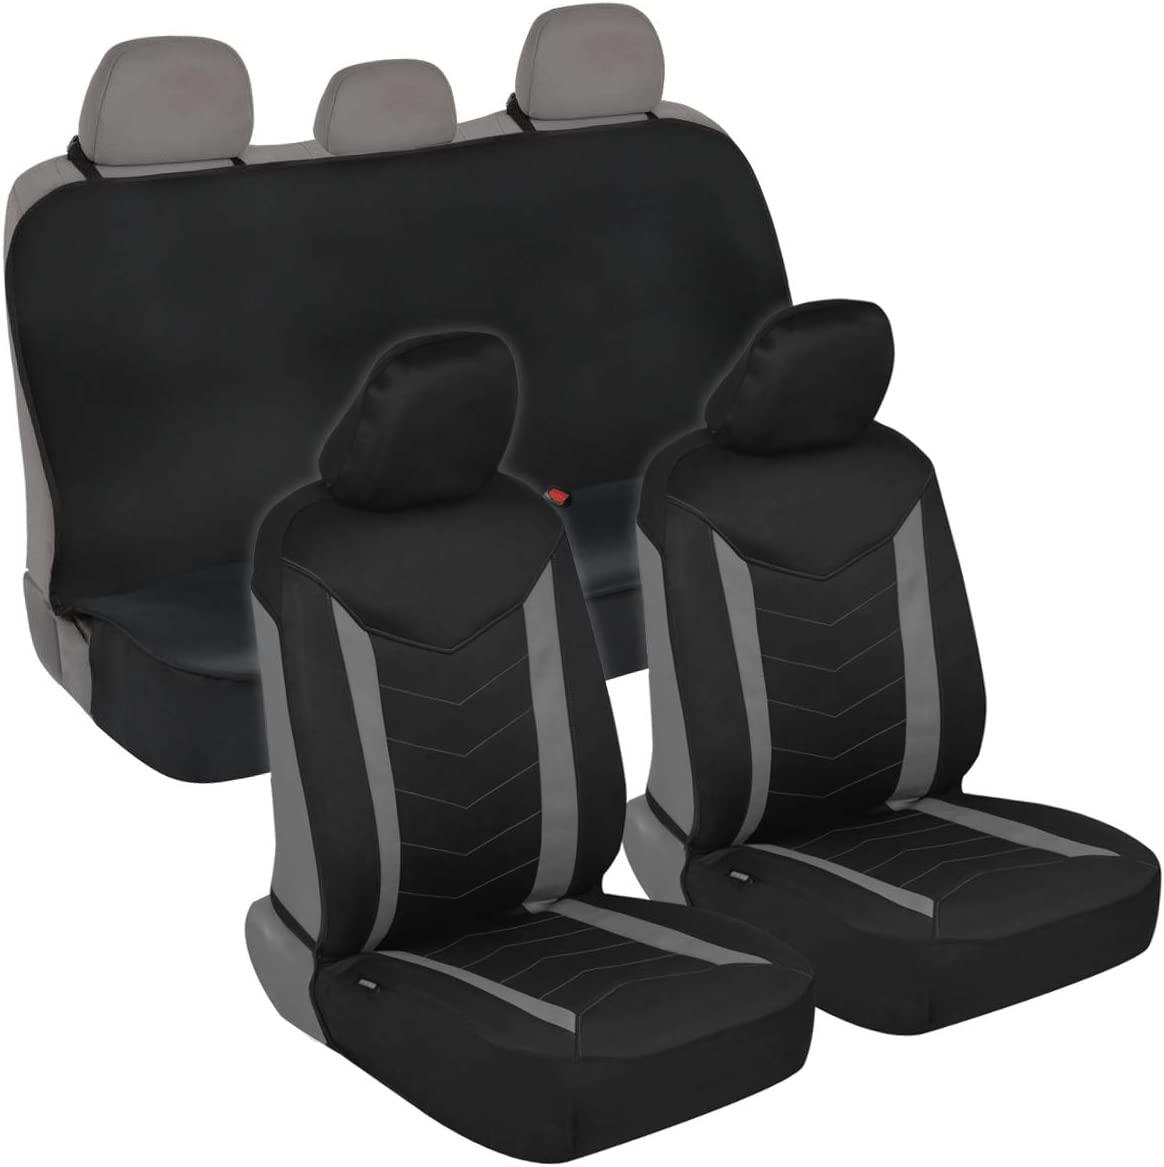 Seat Cover Ford Focus Front 100/% Waterproof Premium Neoprene Airbag Safe